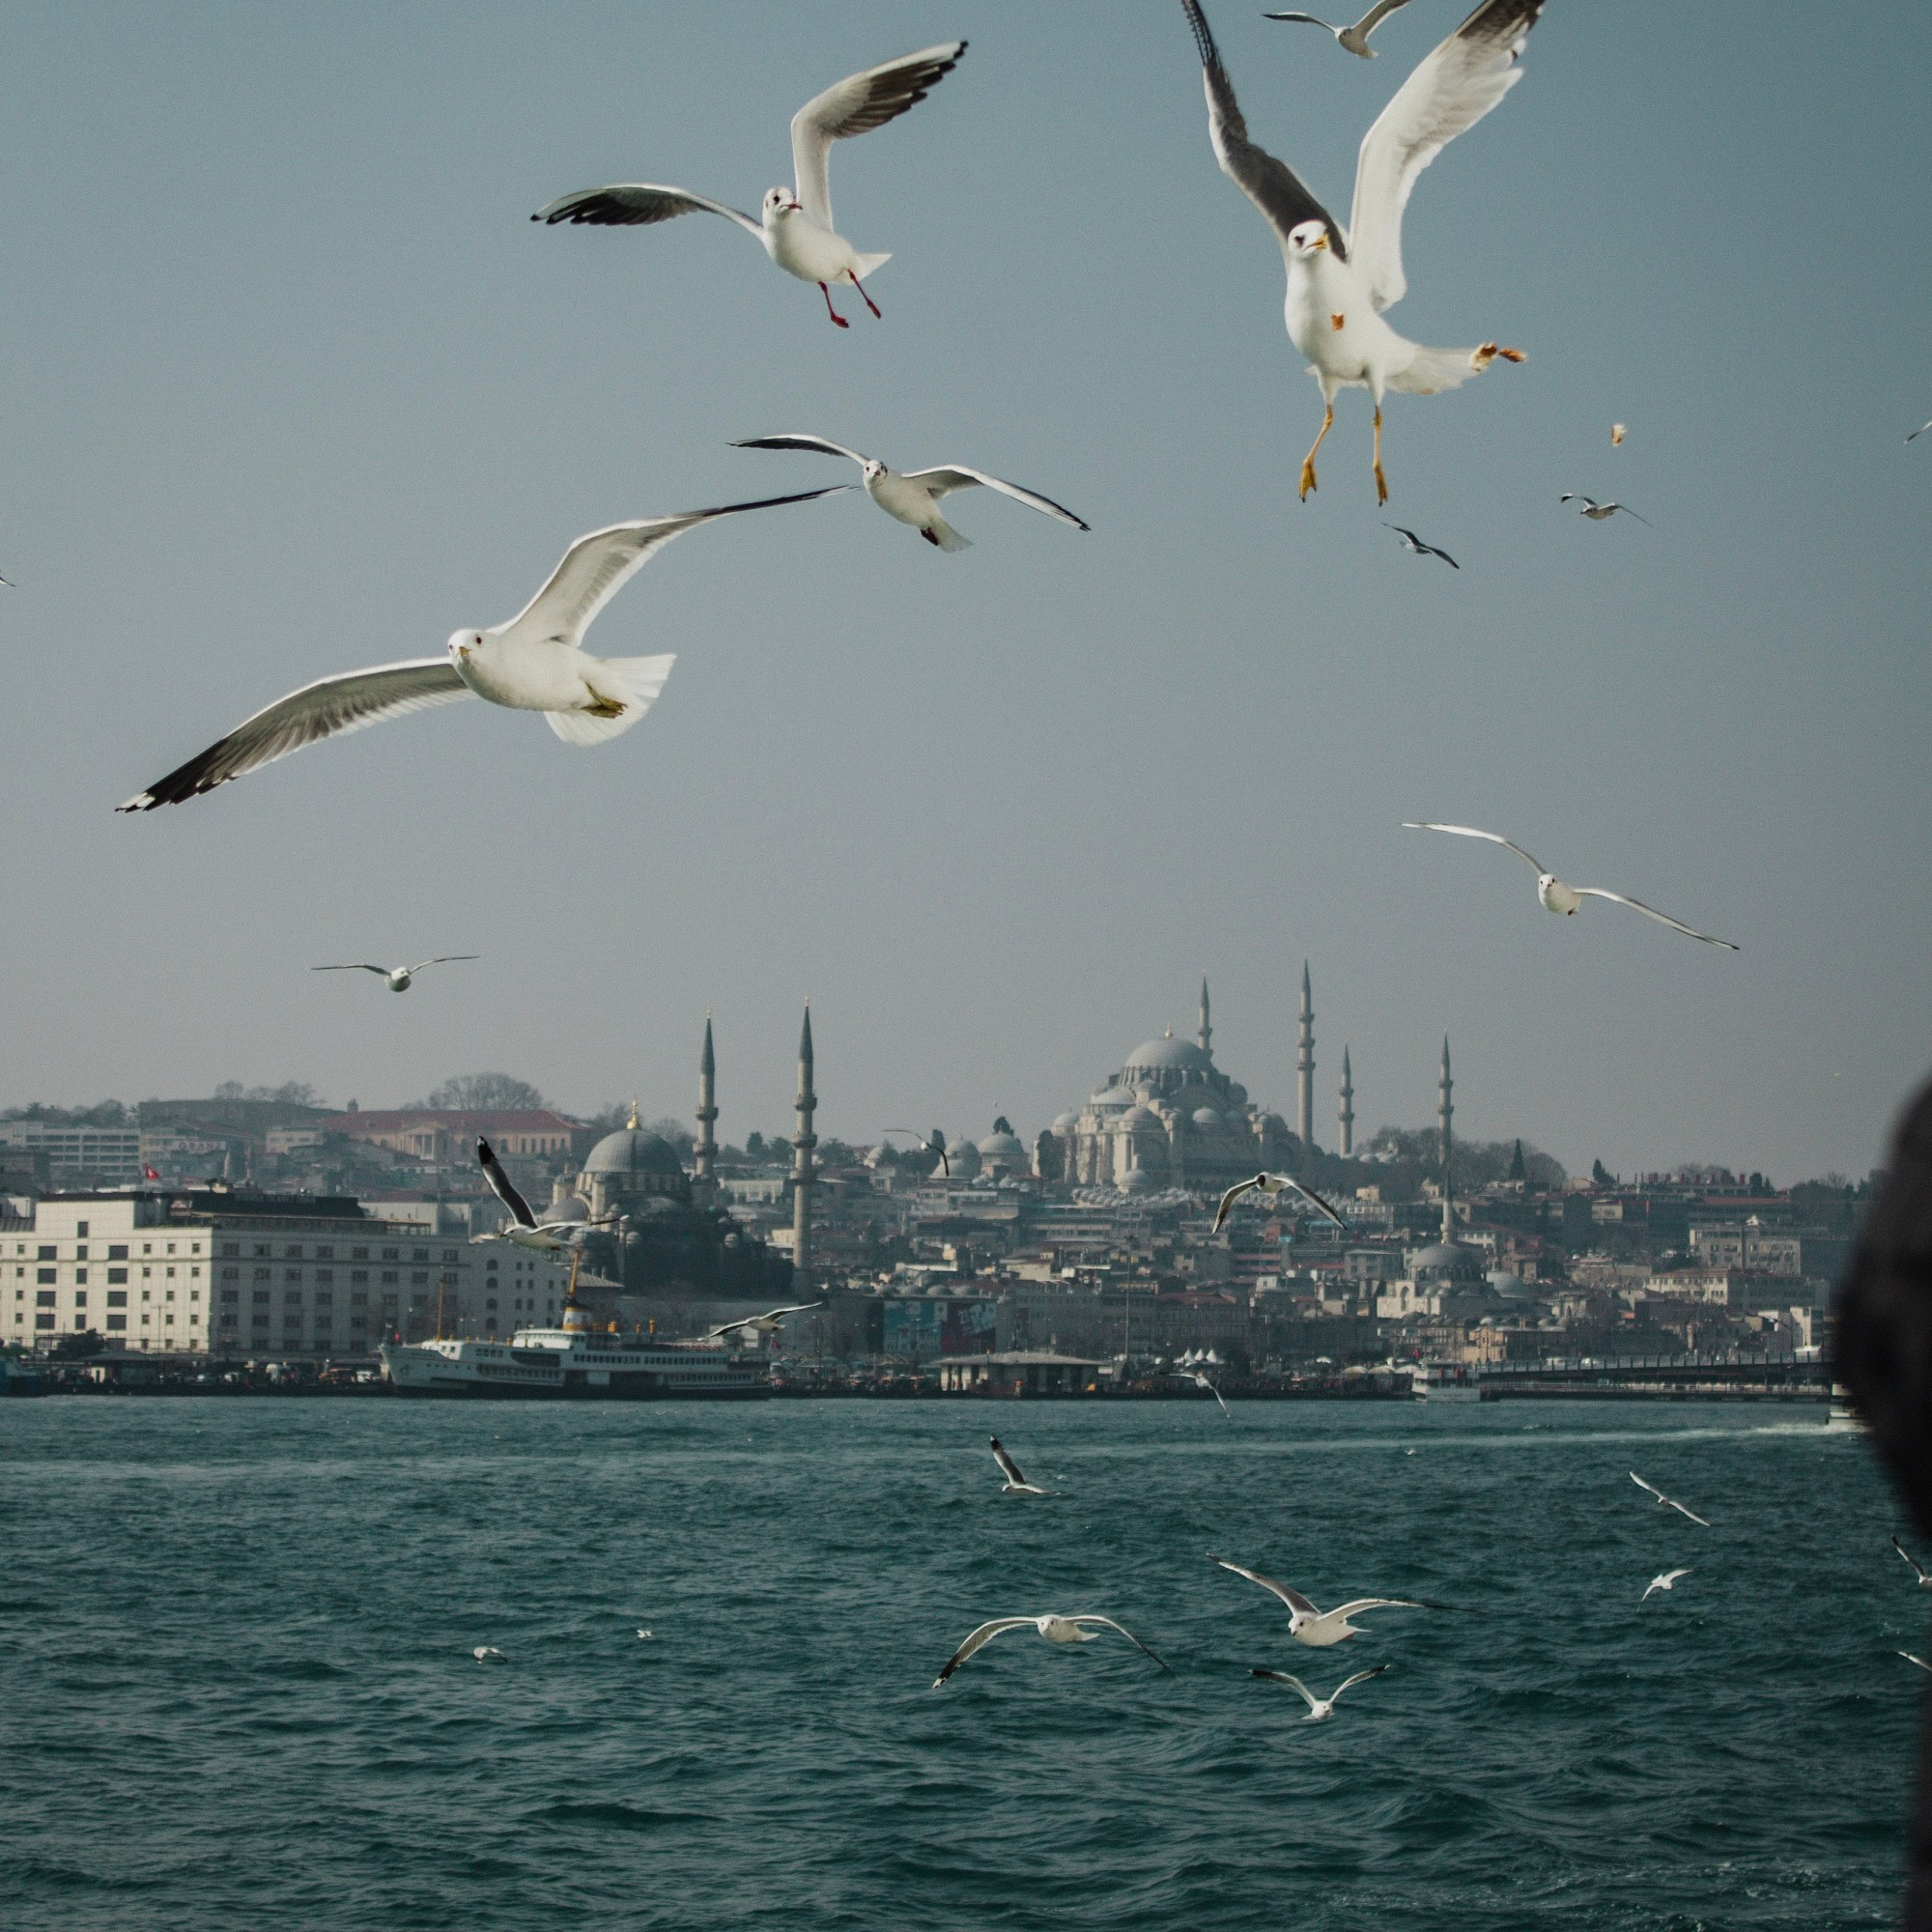 Illustrated by Sade - Sea birds flying above ferry in the Bosphorus River, Istanbul, Turkey